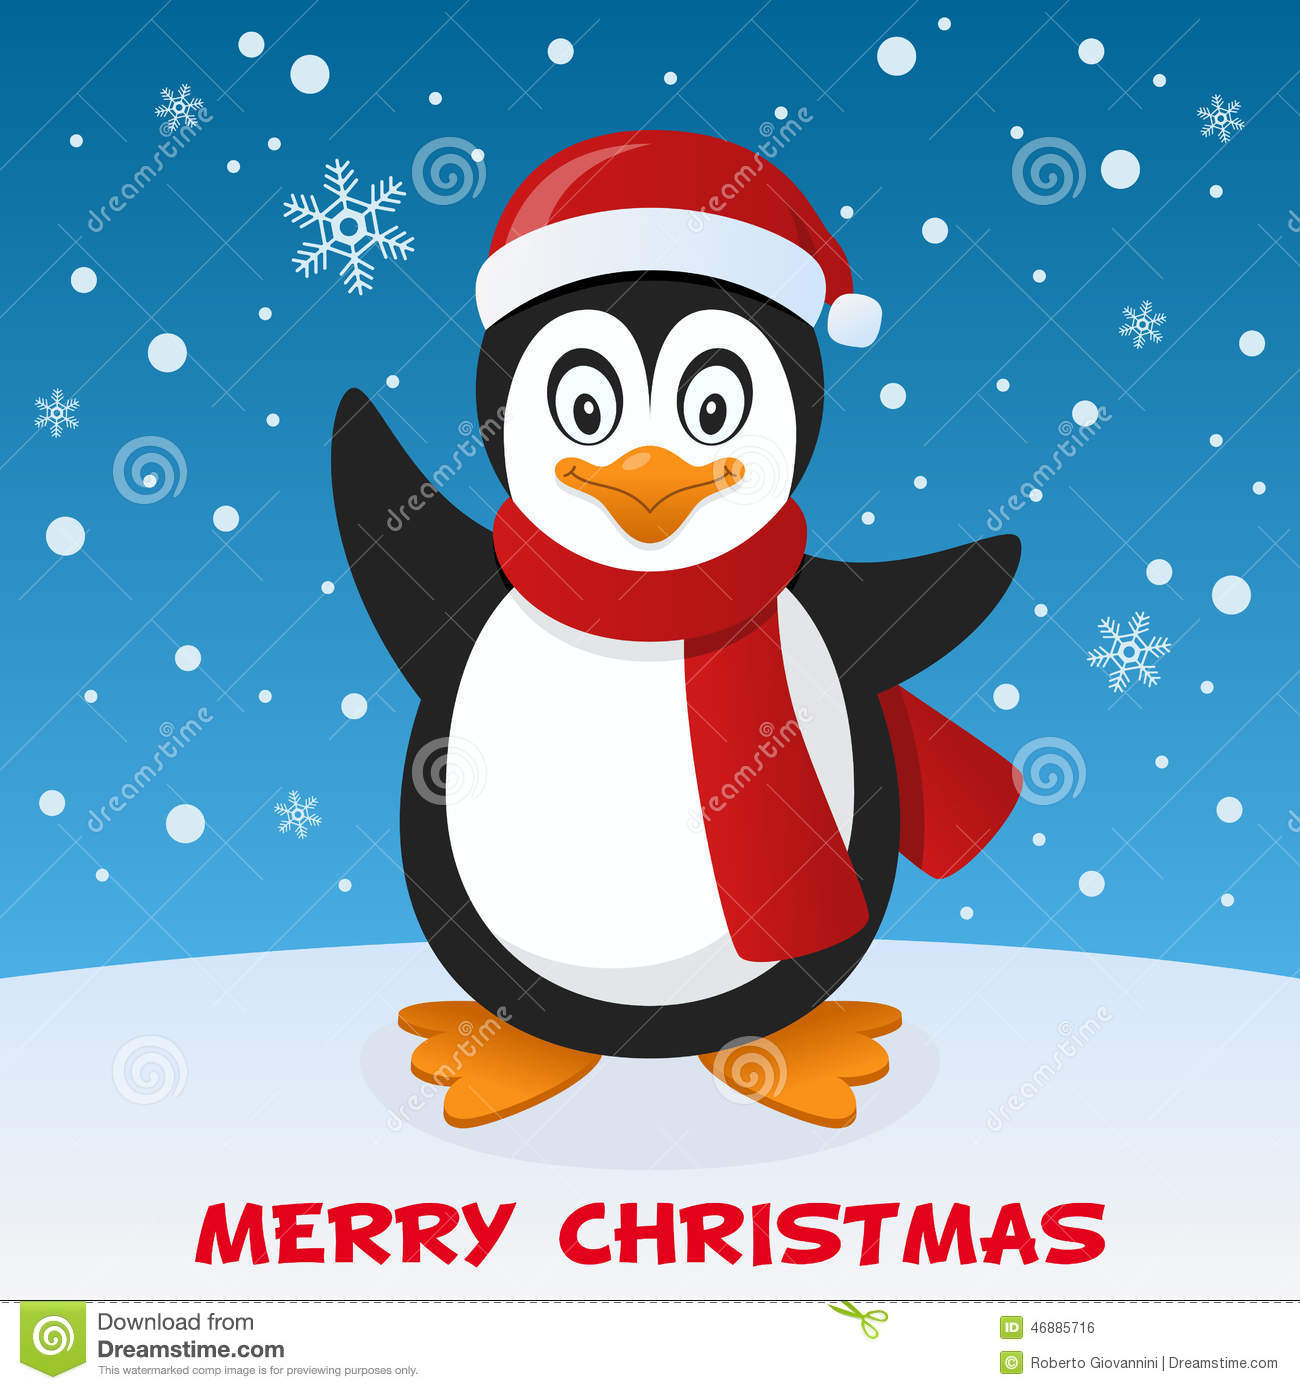 Stock Photo Earth Coloring Book Heavenly Body Pla  Mainlands Globe Image63511371 likewise Food 10230 furthermore Stock Illustration Emoji Emoticon Whistling Tune Happily Cartoon Character Image58569409 moreover Stock Illustration Cute Penguin Christmas Snow Happy Cartoon Character Santas Hat Snowy Scene Eps File Available Image46885716 furthermore Vector Businessman Happily Work I Love My Job Concept Eps10. on whistling cartoon character